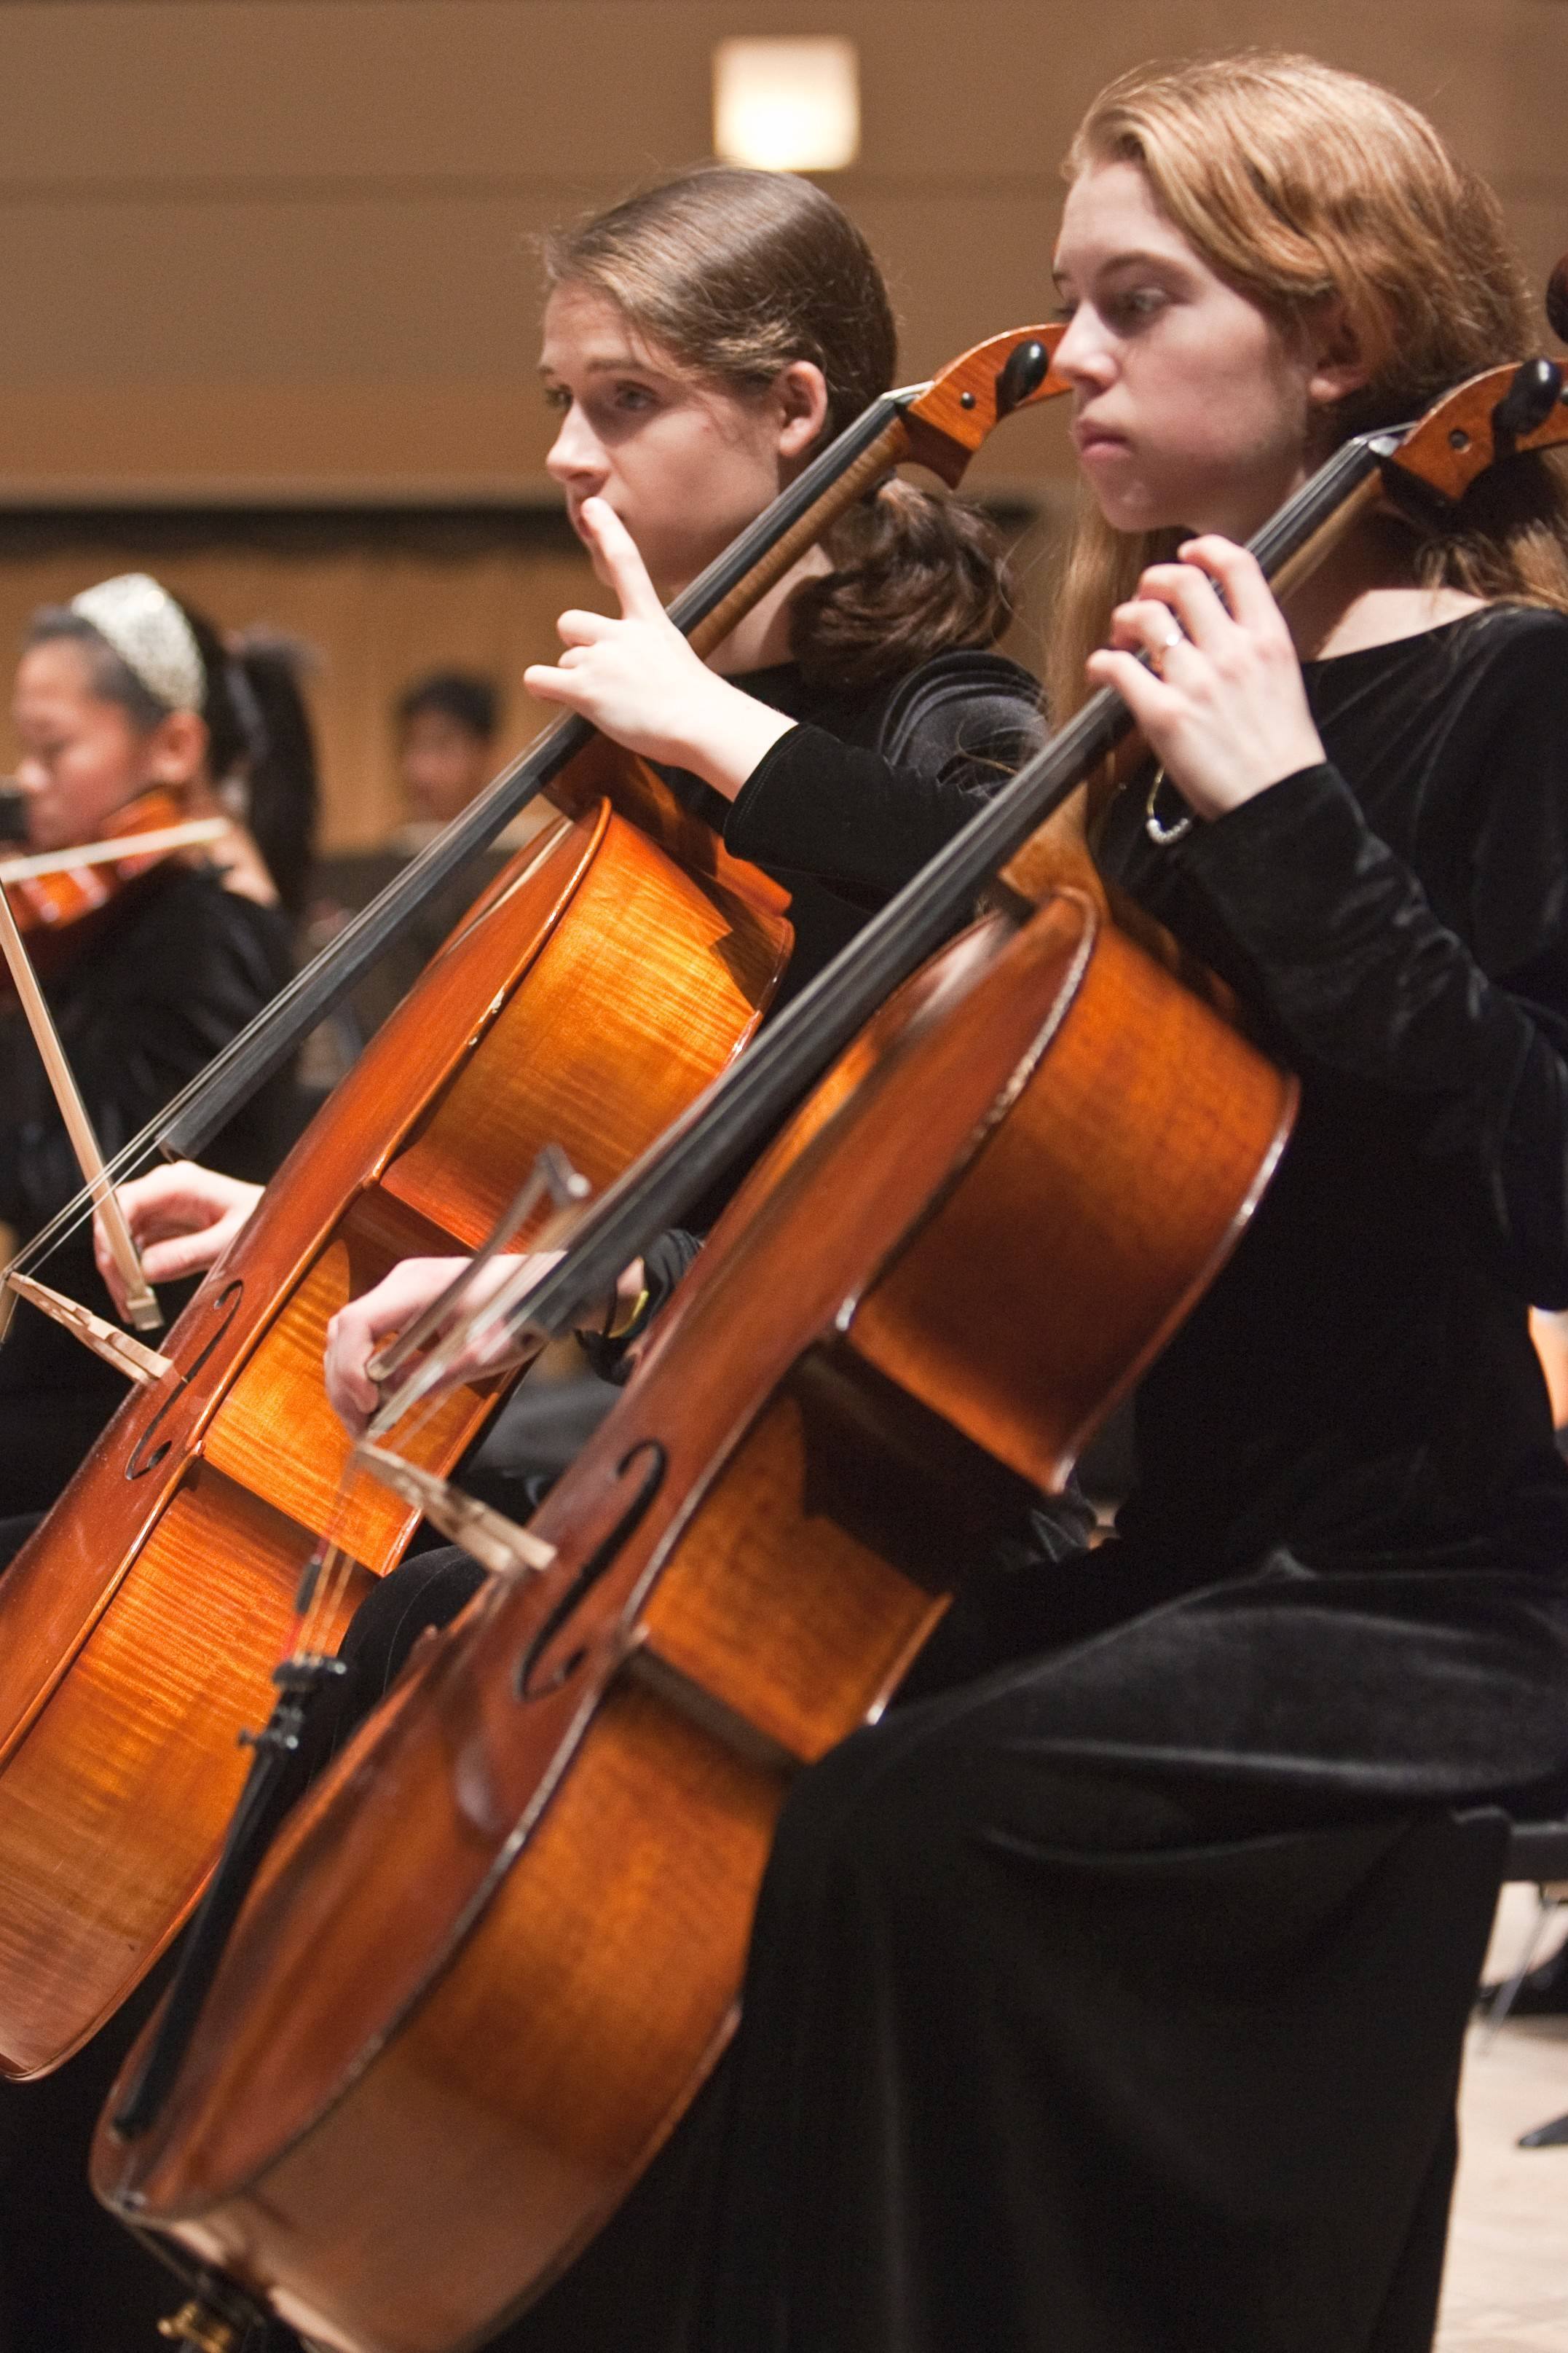 Kendra Standish, right, and Sarah Swiston, middle, play cello with the Youth Symphony of DuPage. The symphony performs three concerts a year, with its next one coming on Sunday, March 9.